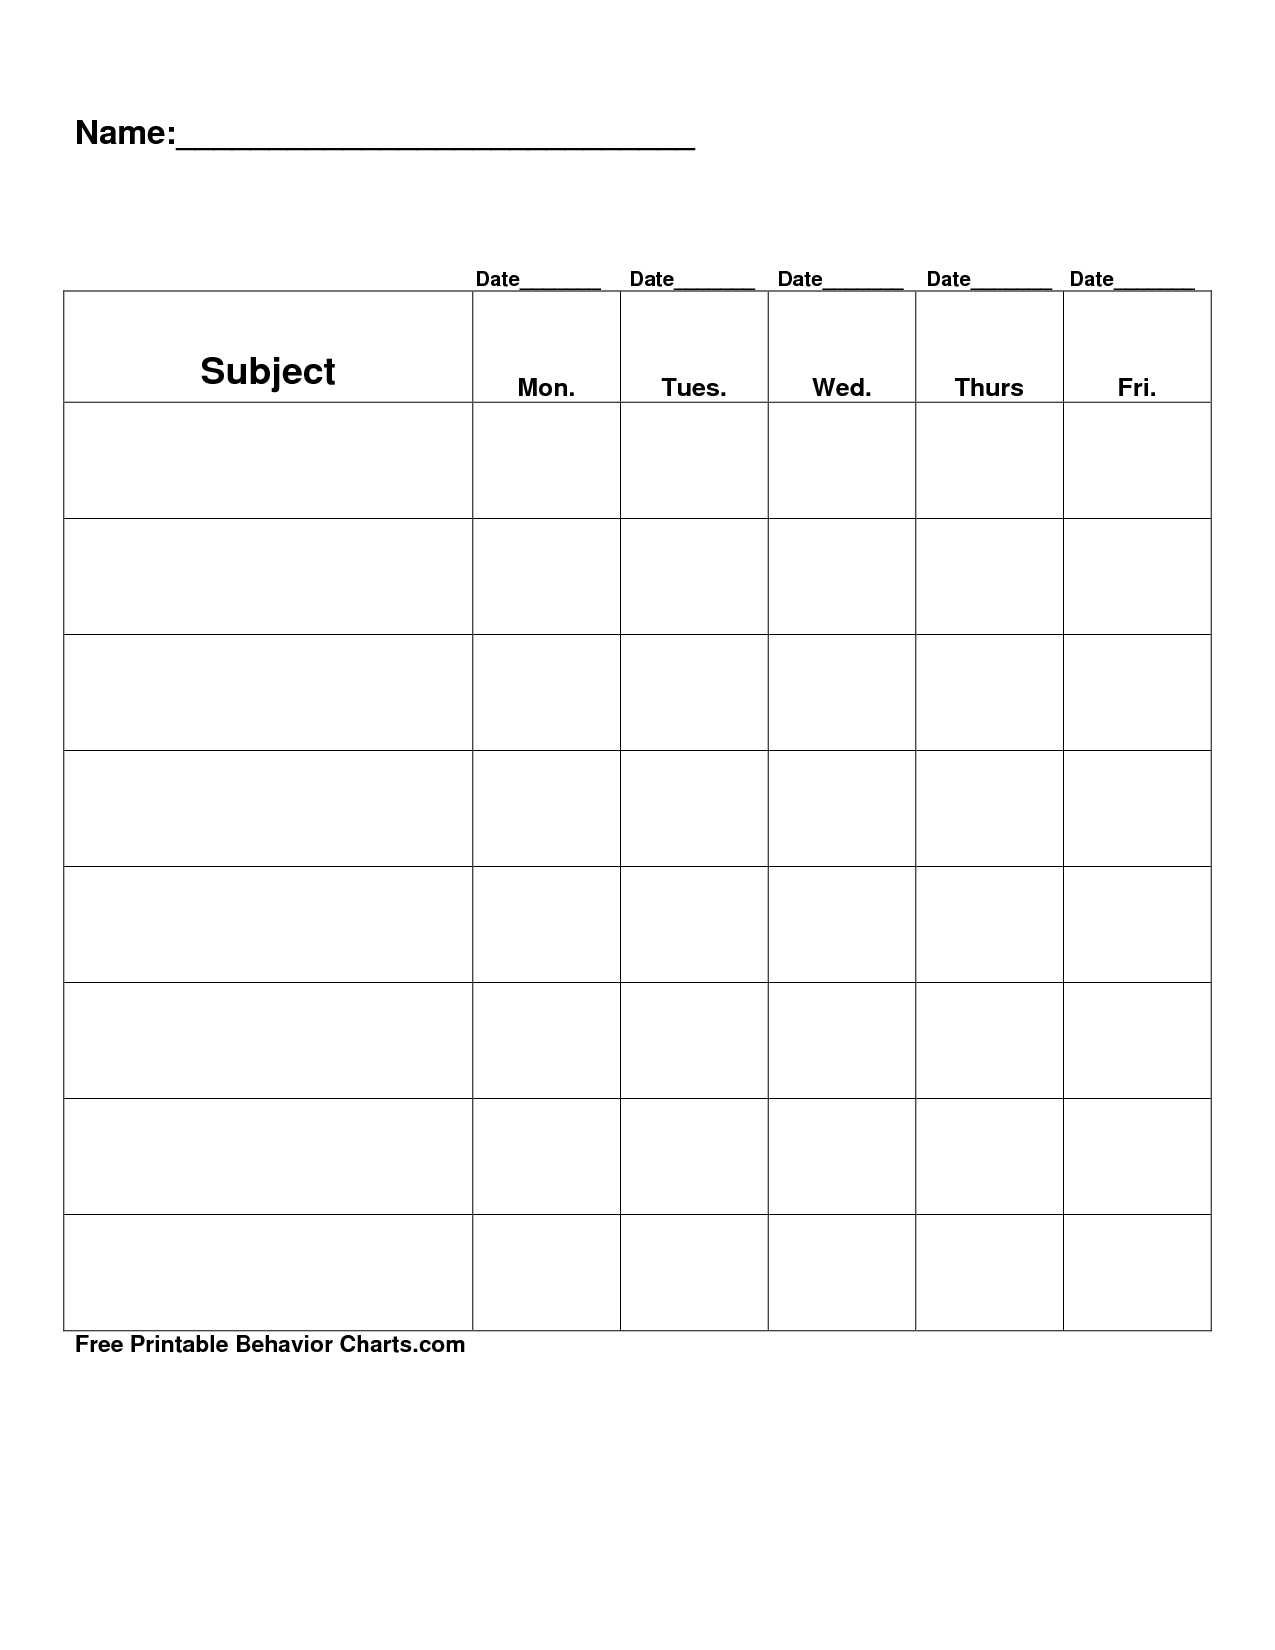 Free printable blank charts behavior com pdf also rh pinterest